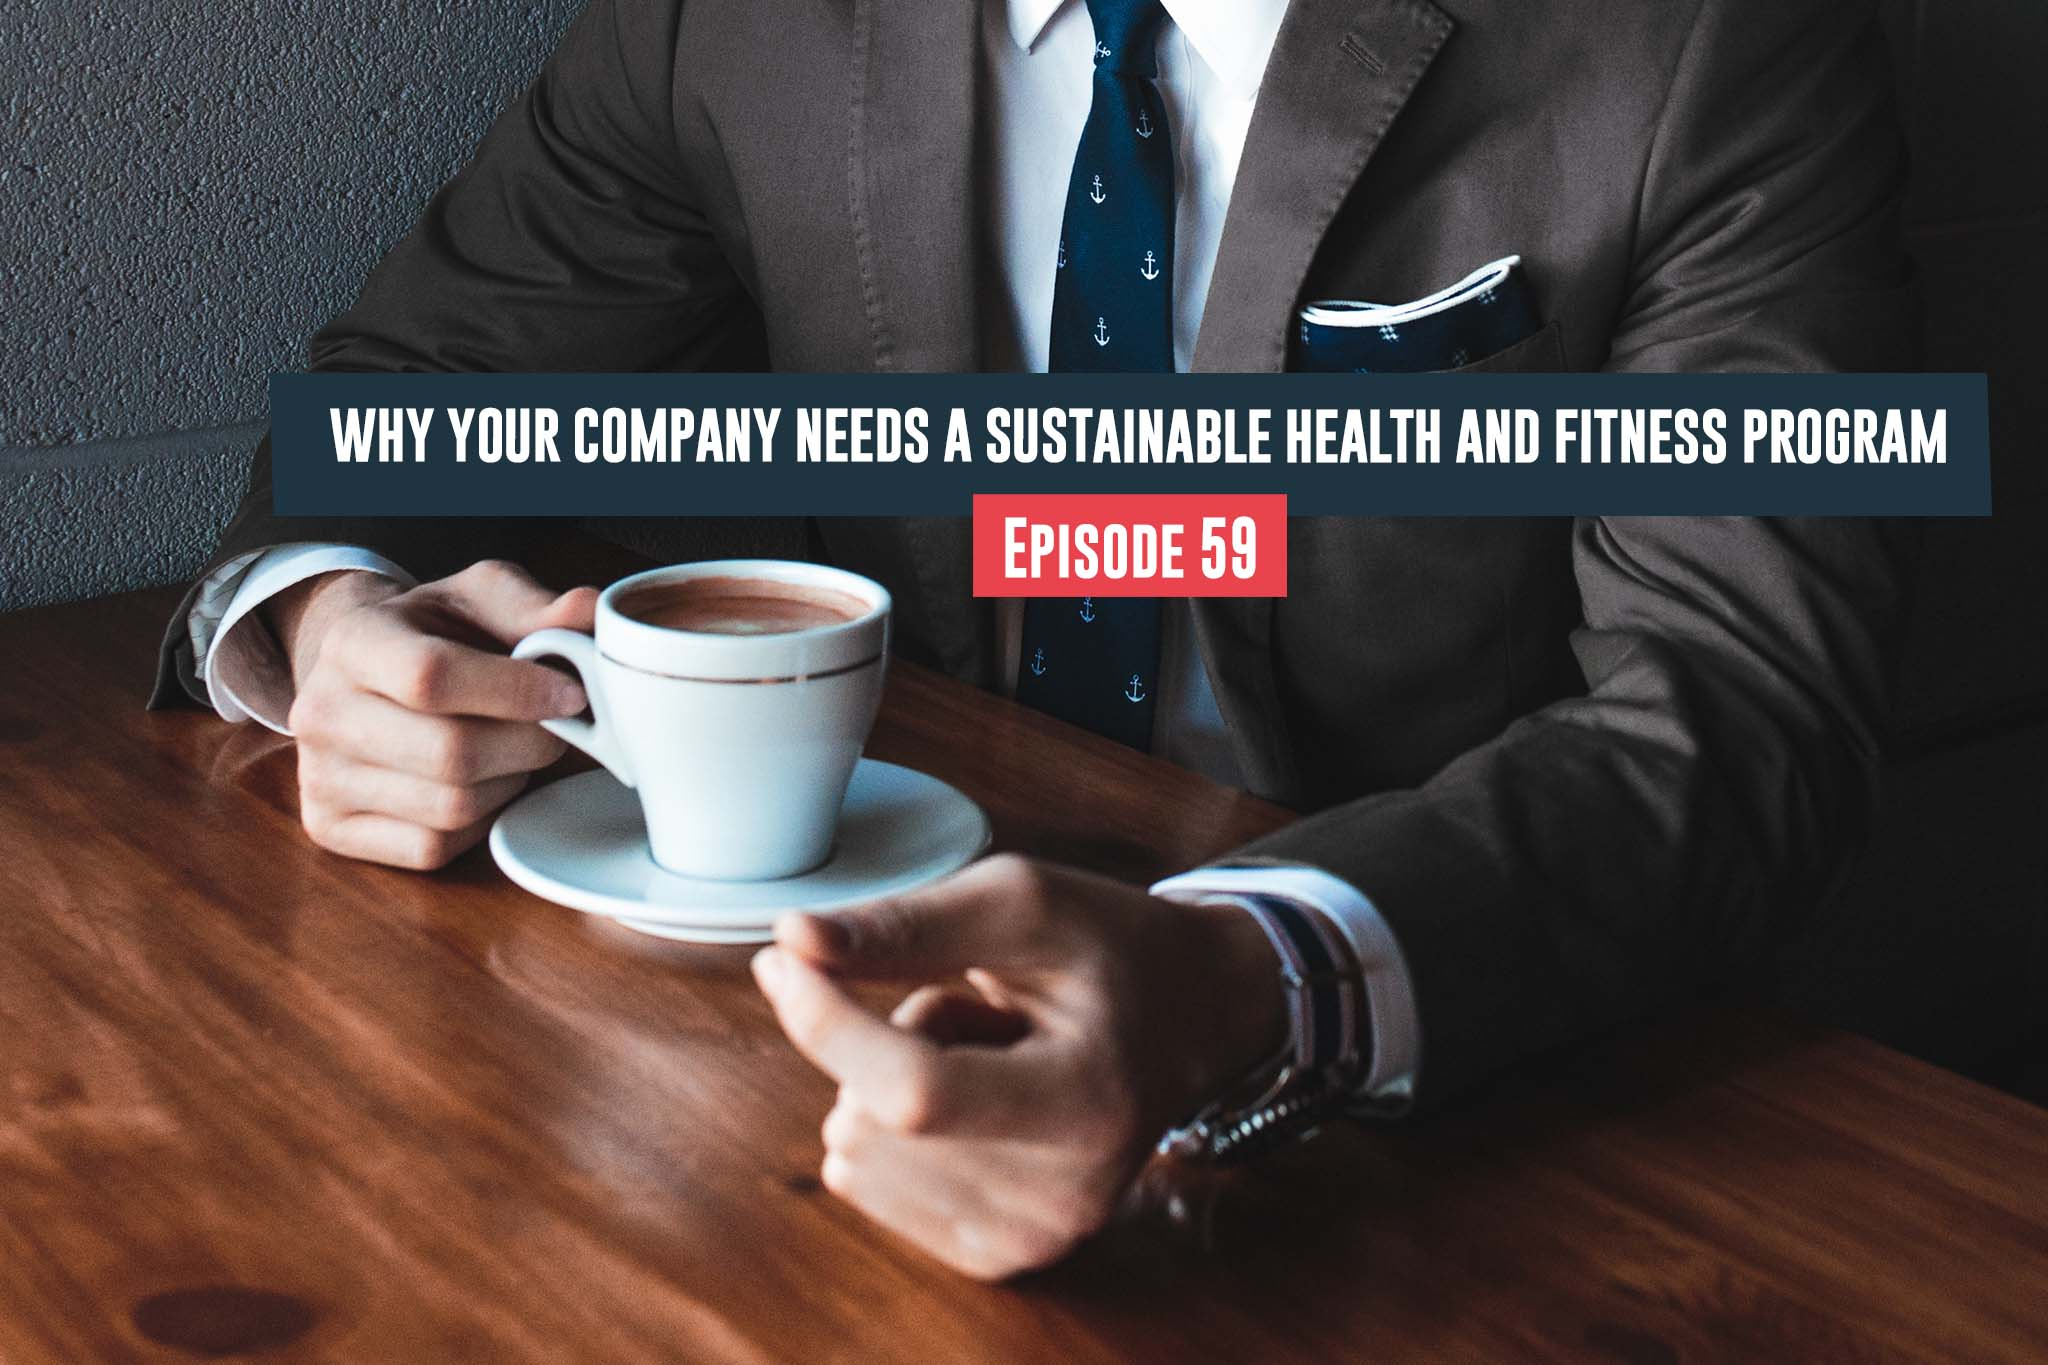 Sustainable Health and Fitness Program